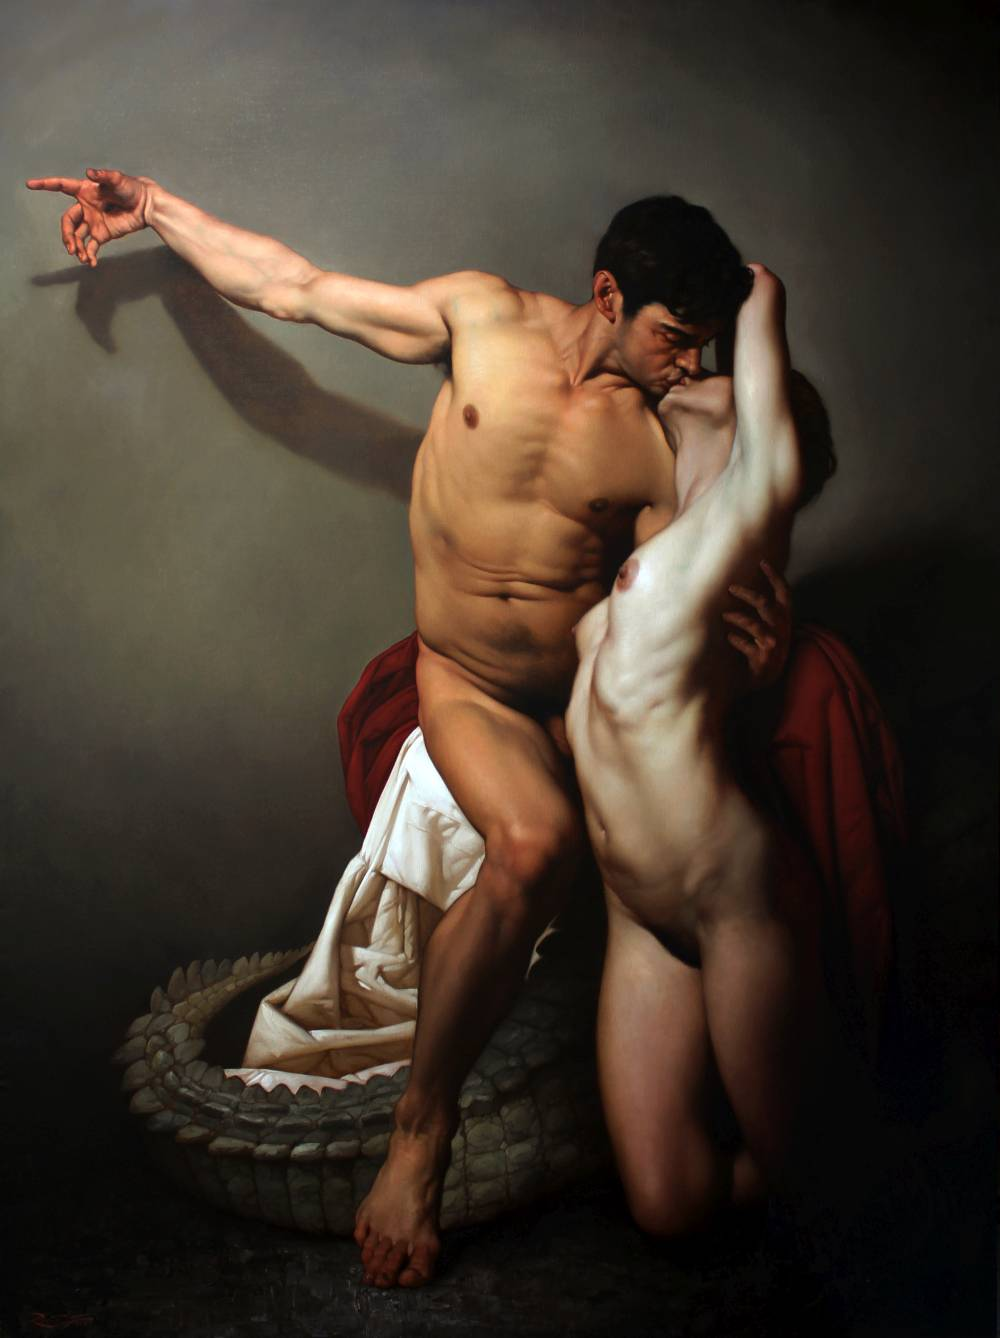 Roberto Ferri Paintings_IL BACIO - THE KISS olio su tela 200 x 150 cm anno 2015